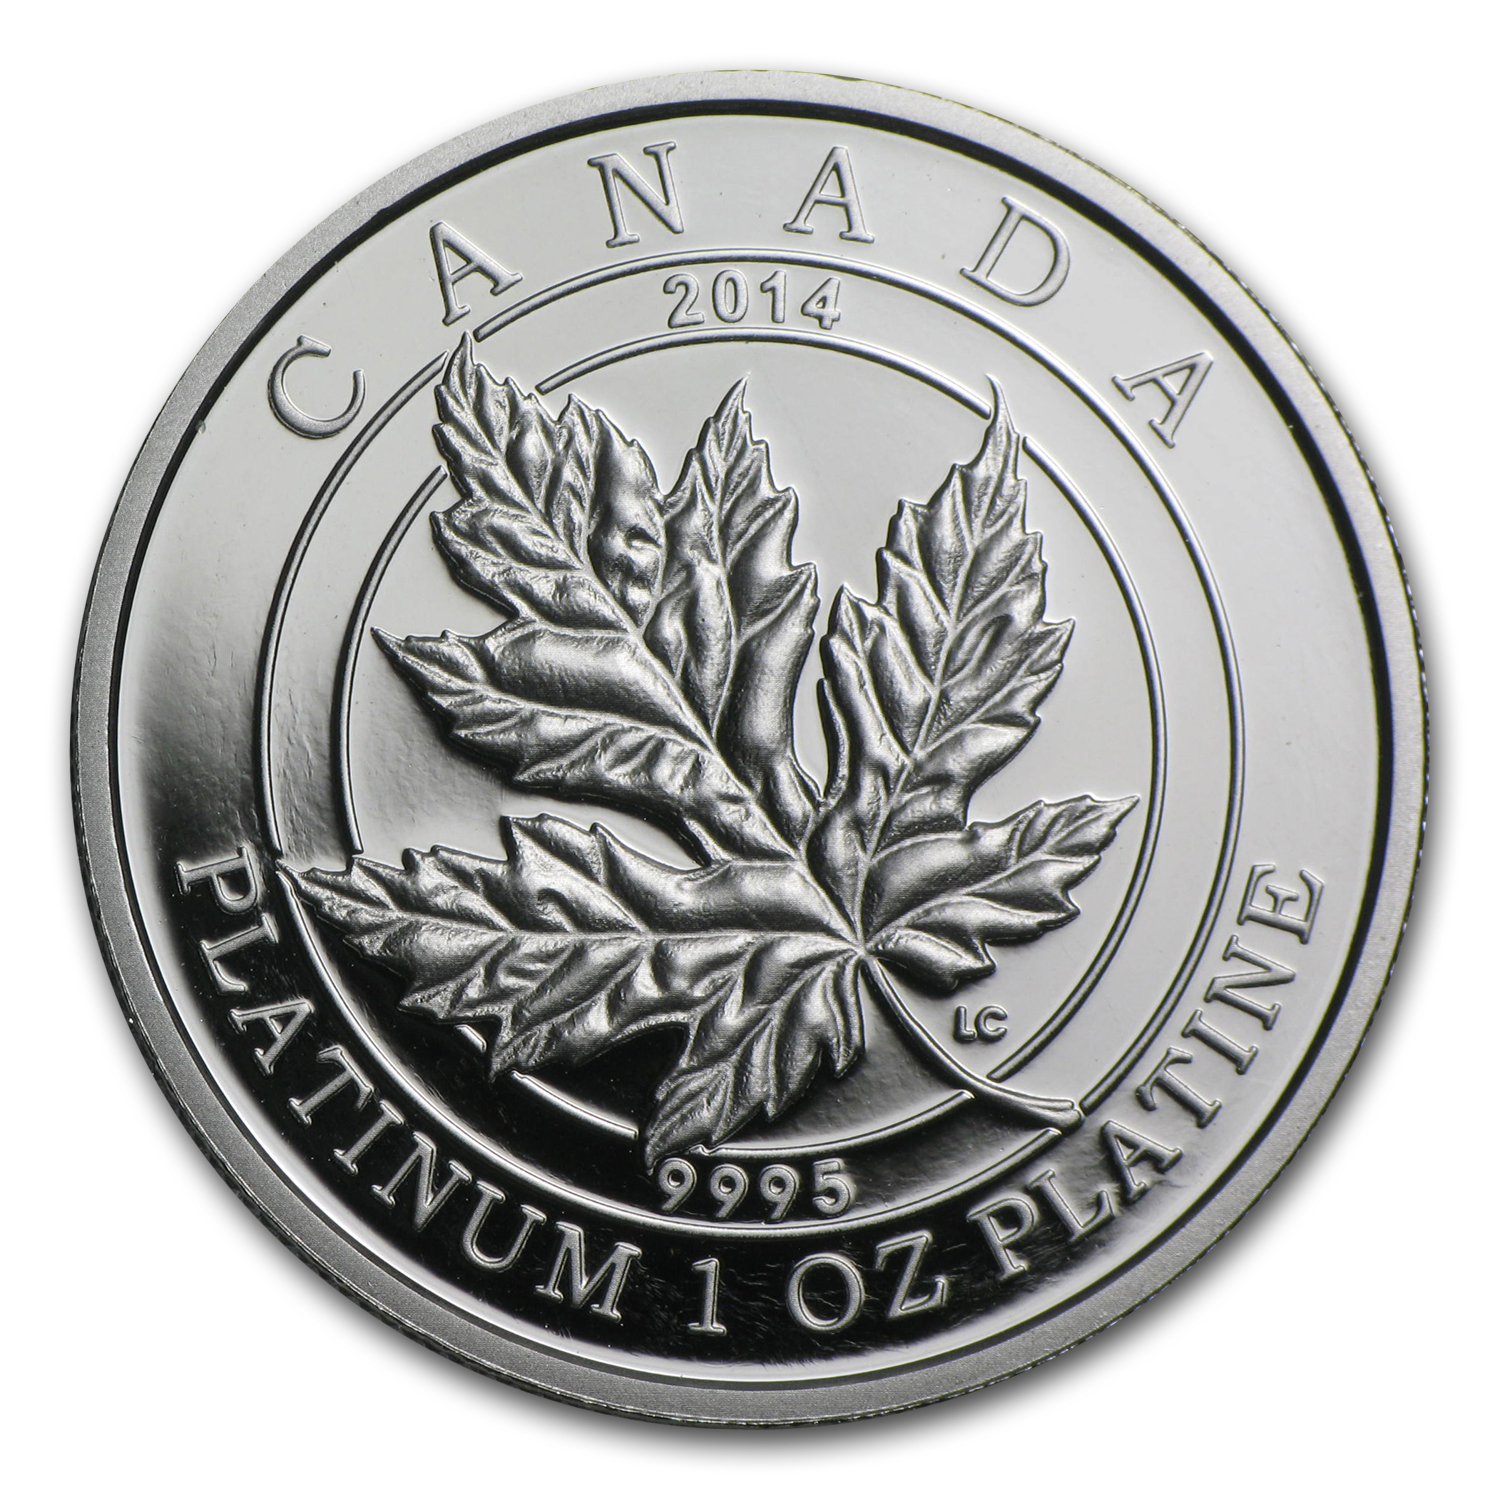 2014 1 oz Proof Platinum Canadian $300 Maple Leaf Forever